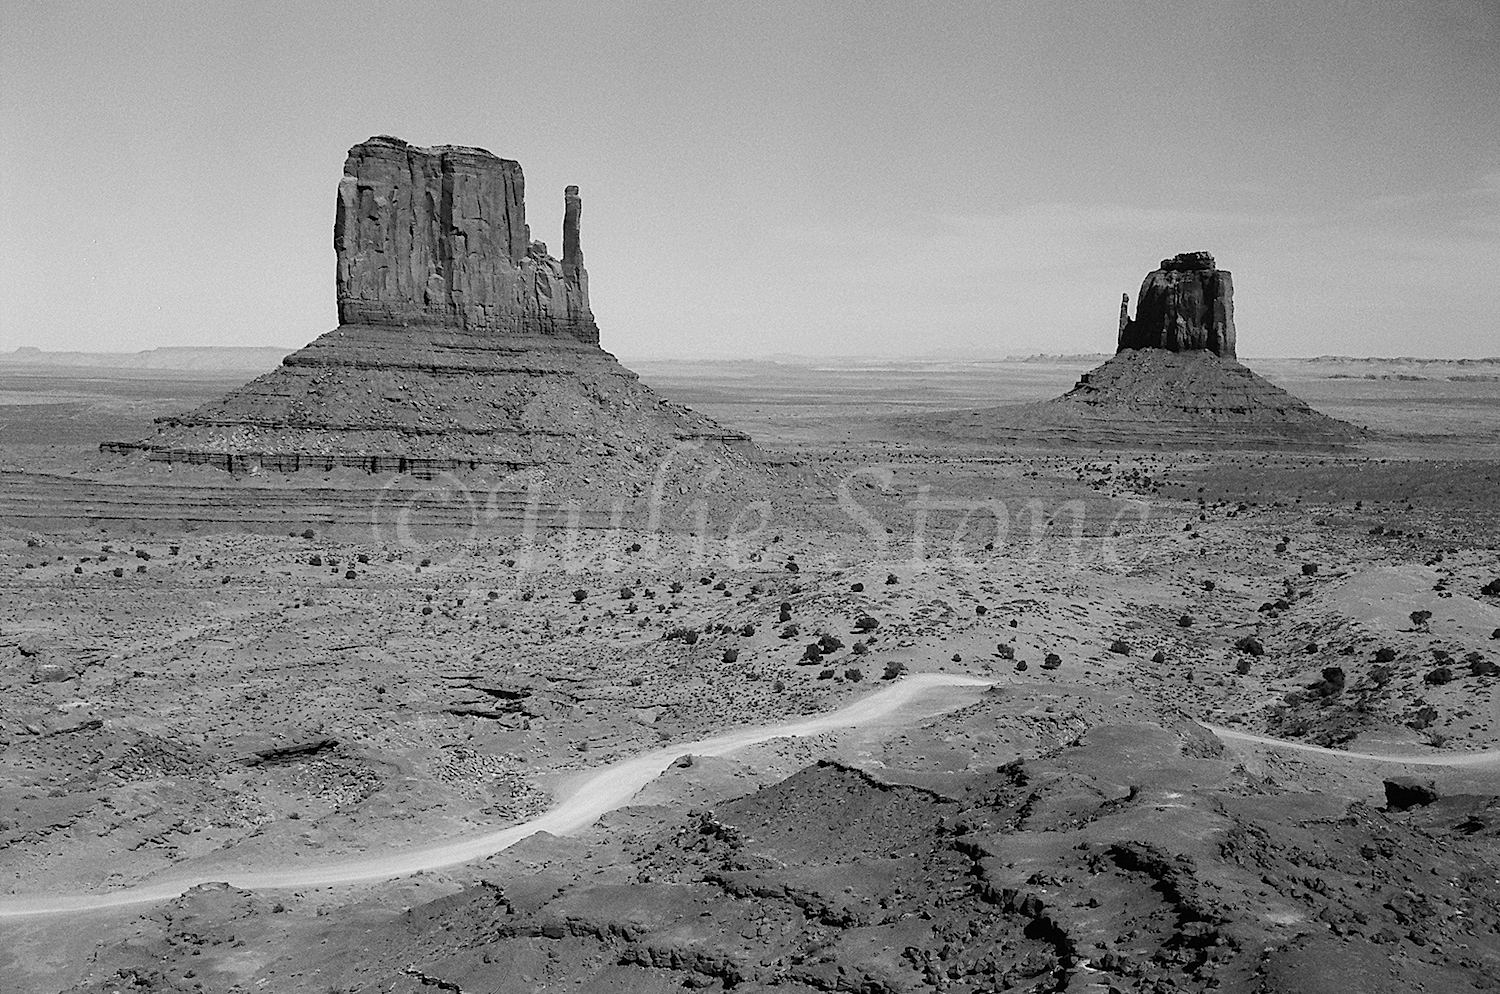 Monument Valley-The Mittens 2004